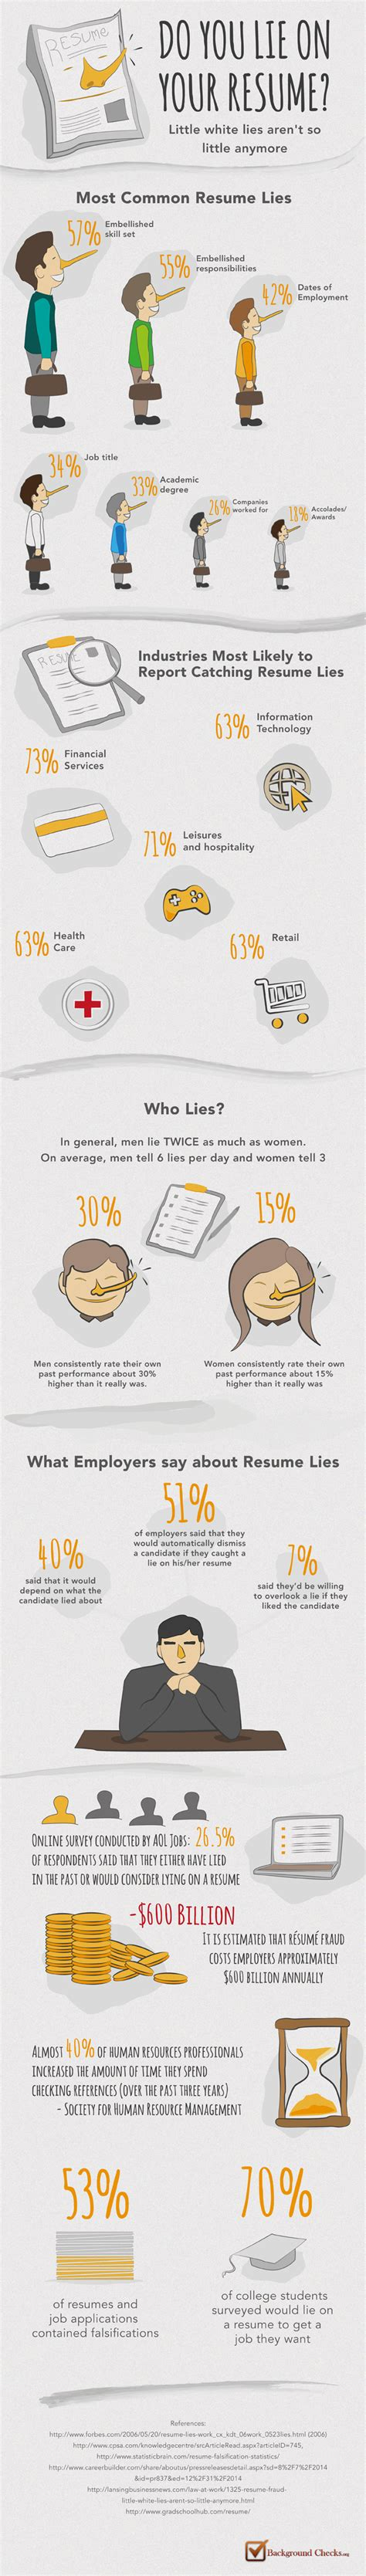 why resume white lies are a big mistake infographic the savvy intern by youternthe